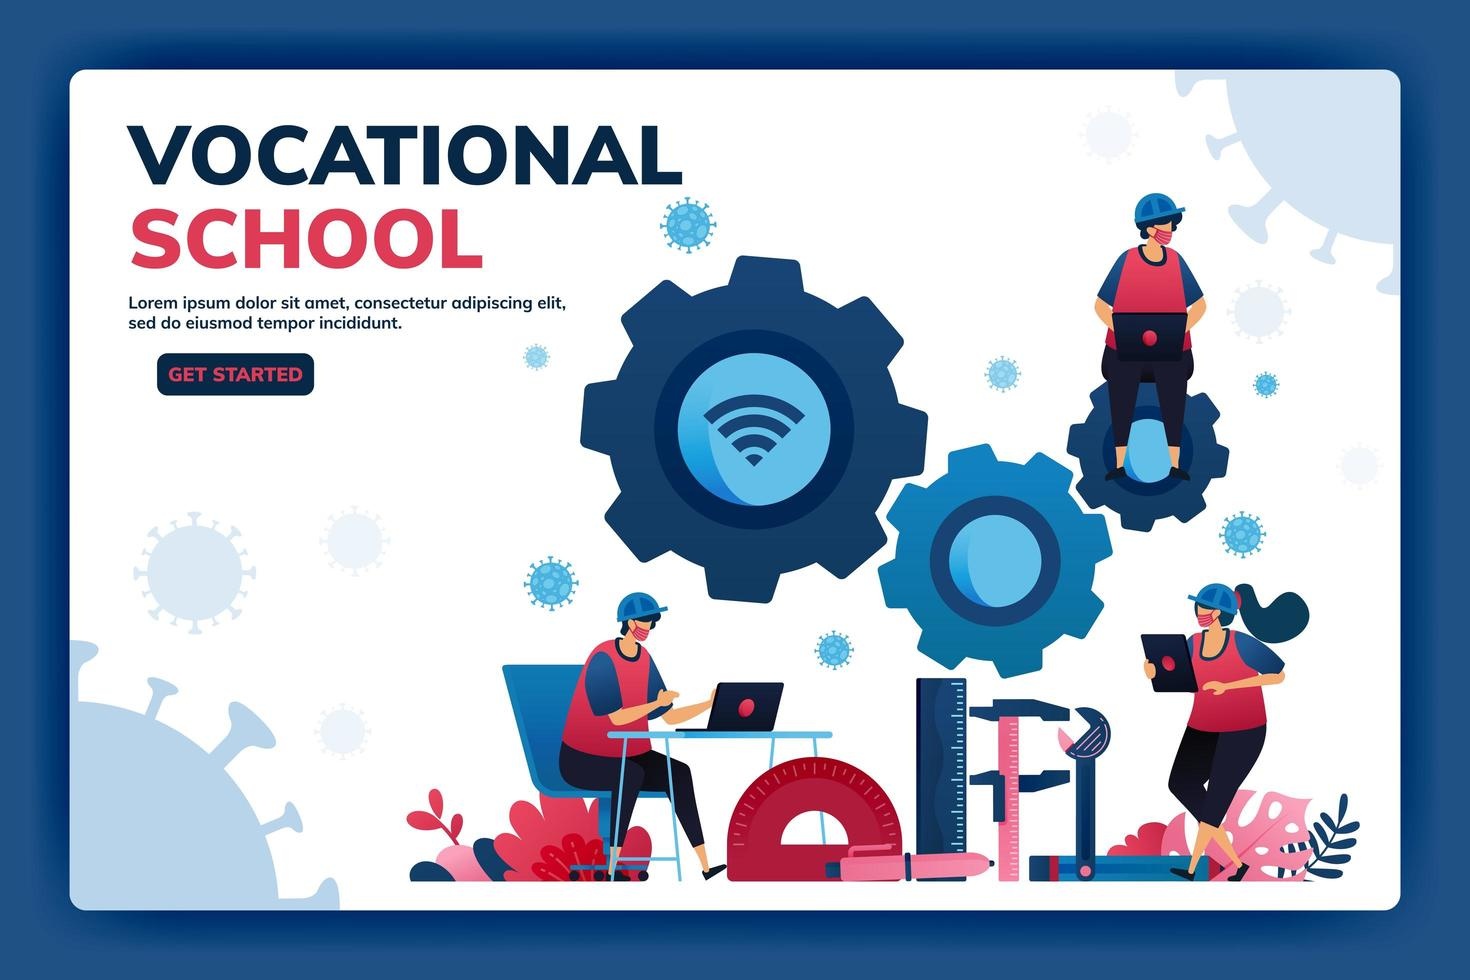 Landing page vector illustration of vocational education scholarships and e-learning to support human resources during the covid-19 virus pandemic. Symbols of machines tools. Web, website, banner